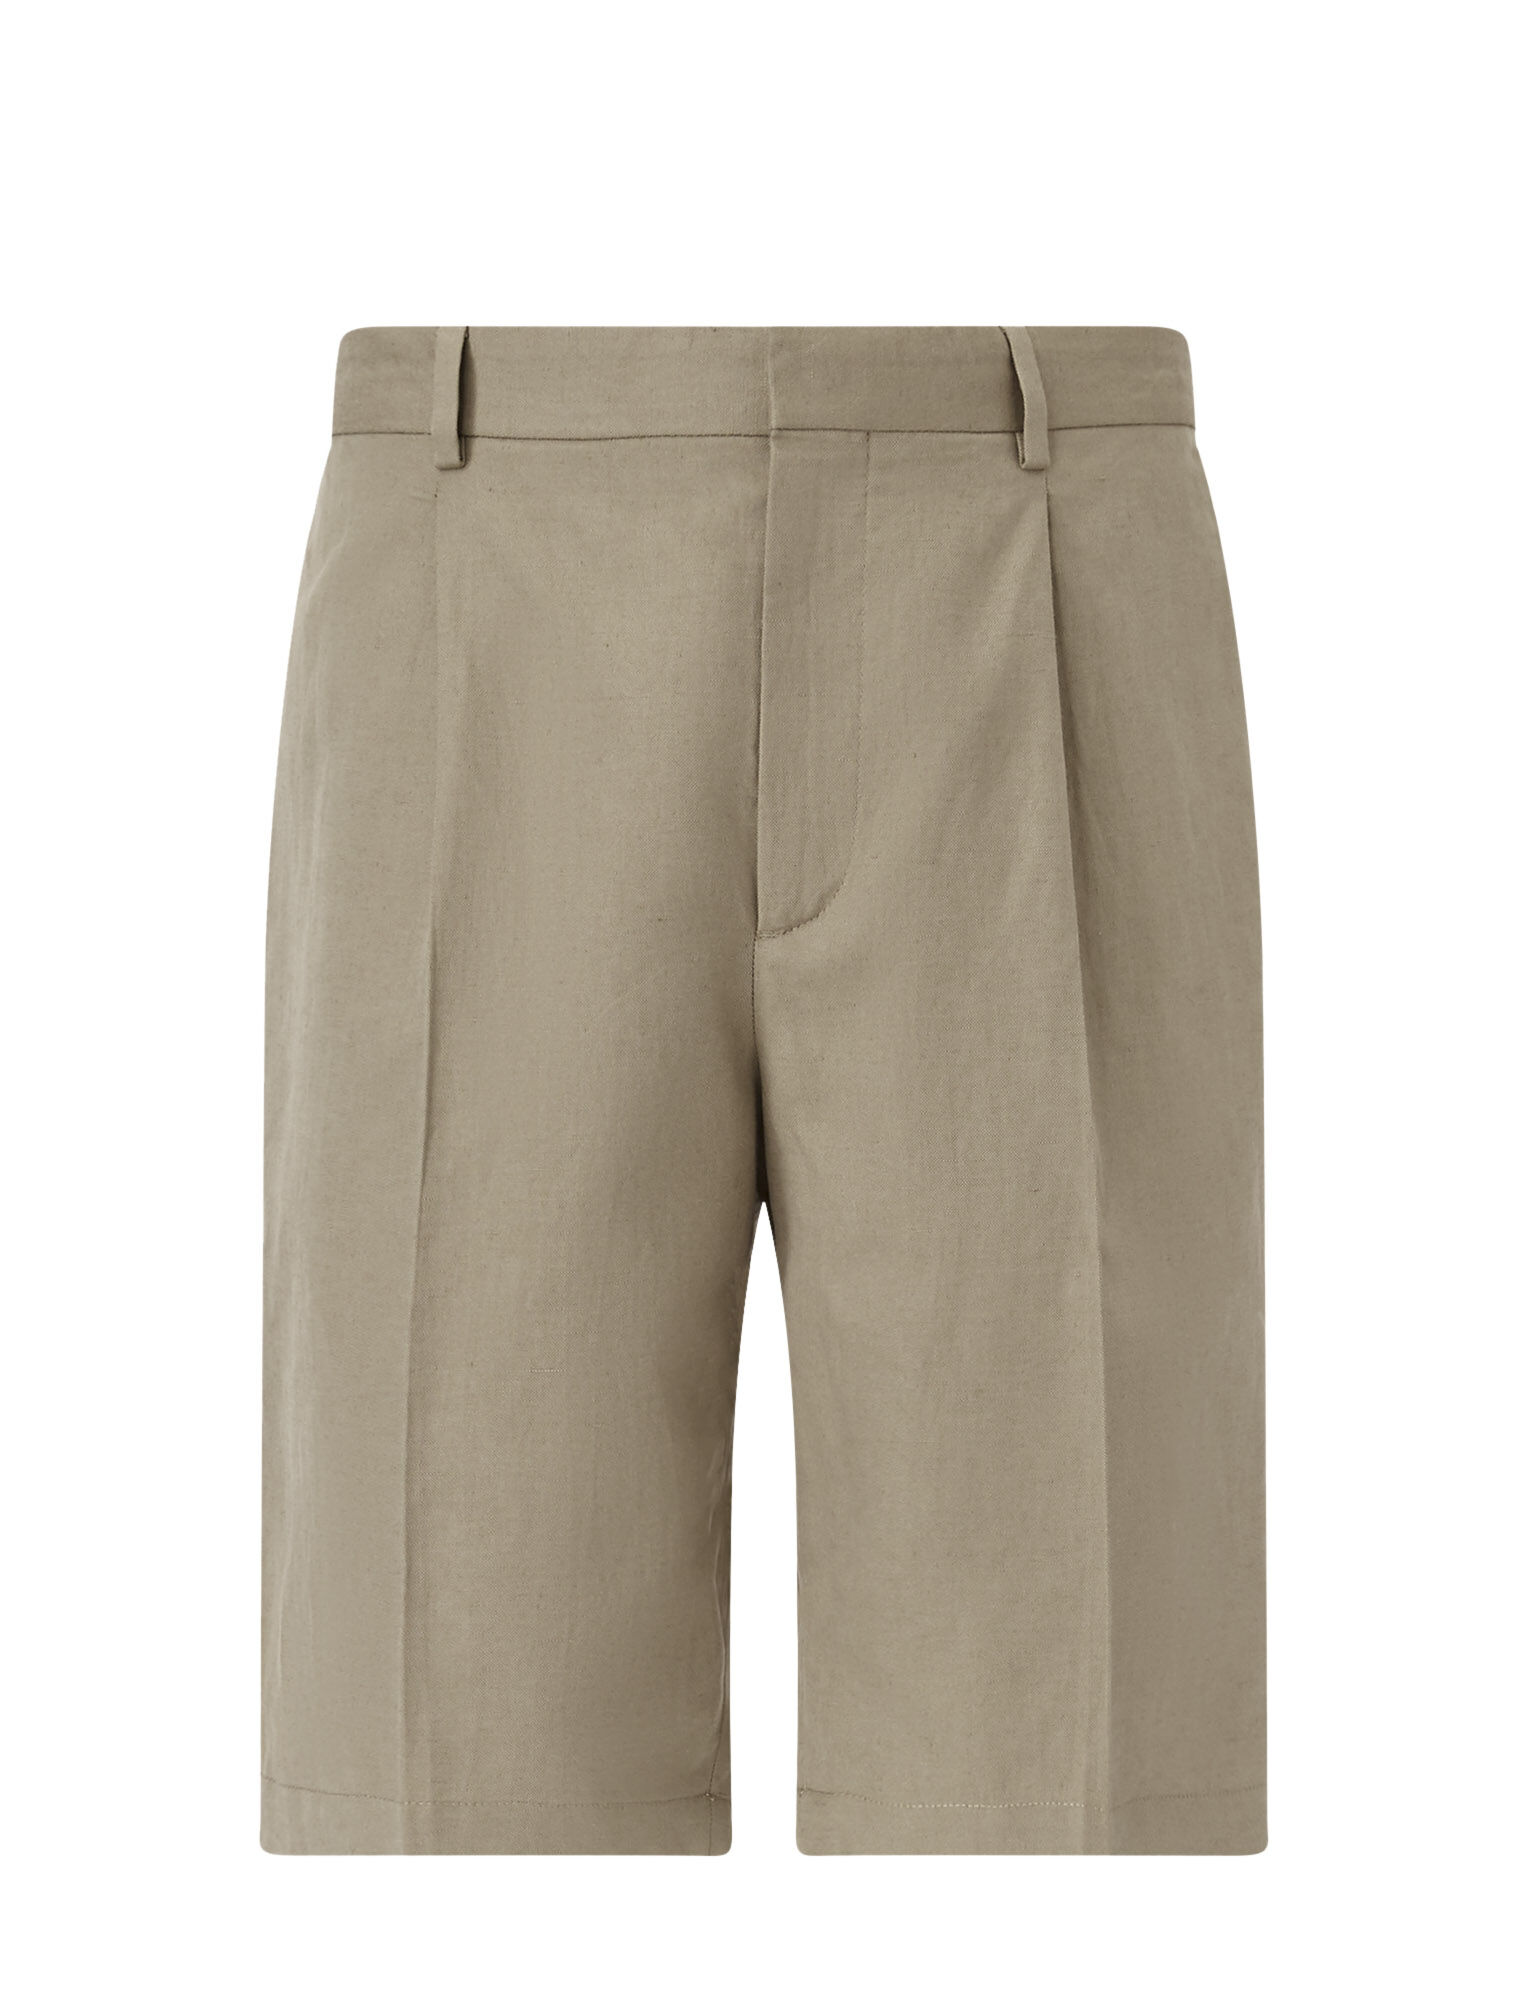 Joseph, Short Plage Linen Cotton Blend Trousers, in SAND